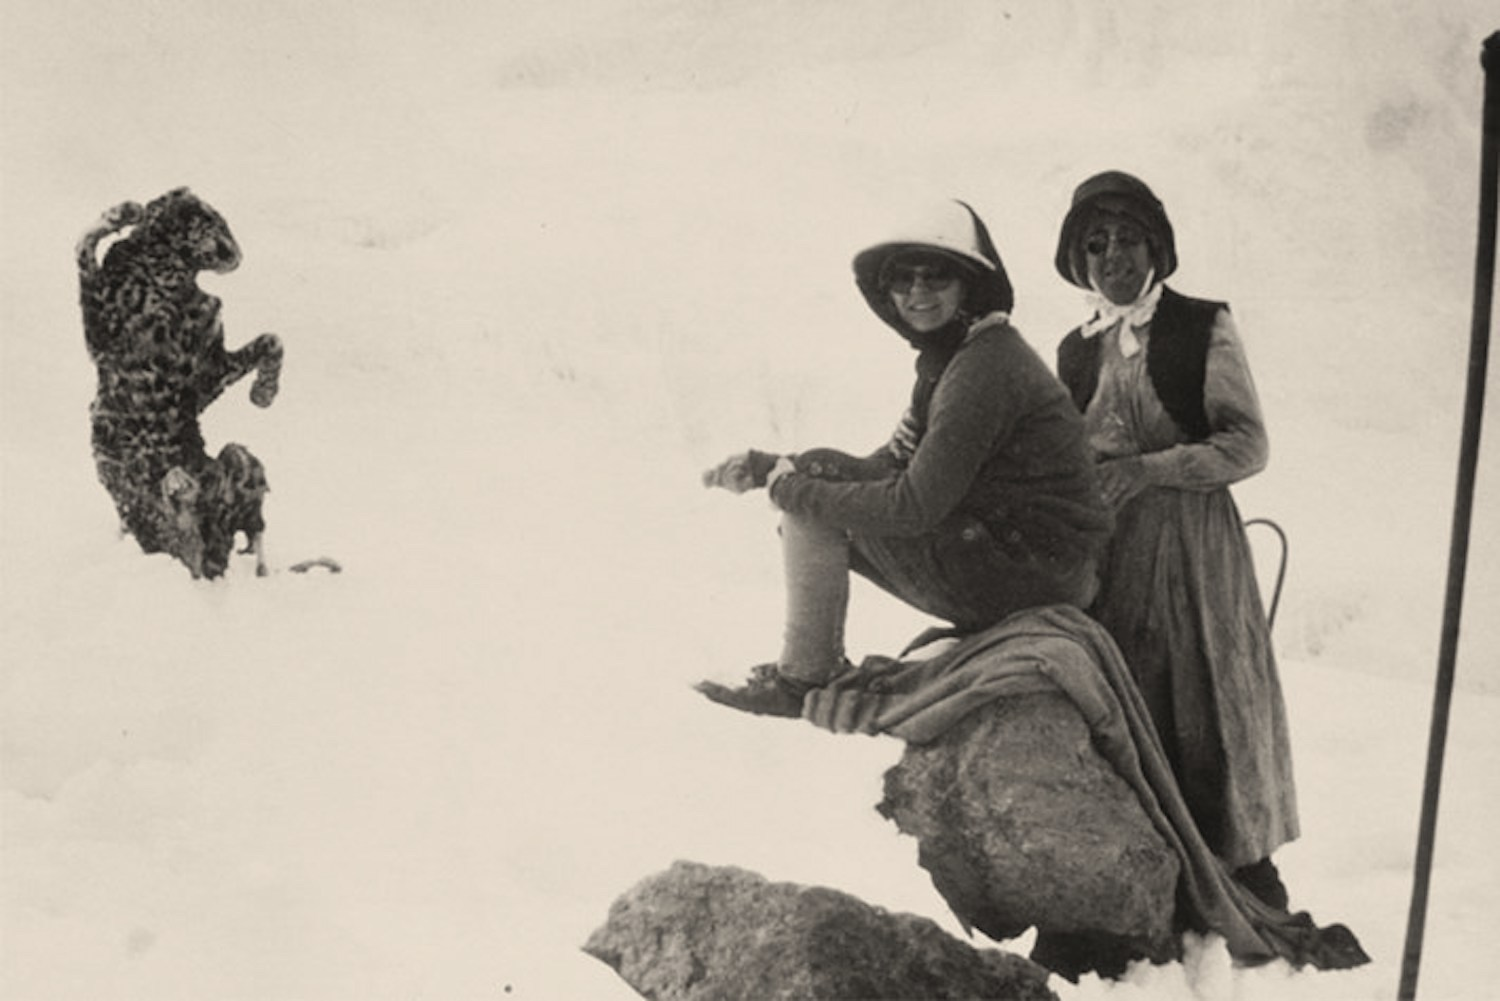 "A ""freeze-dried"" leopard found near the 18,500' mark on Kibo. This 1926 photograph may show Elisabeth Wiegand Müller, the first European woman to summit Kilimanjaro, and her guide Richard Reusch. Image from  here ."